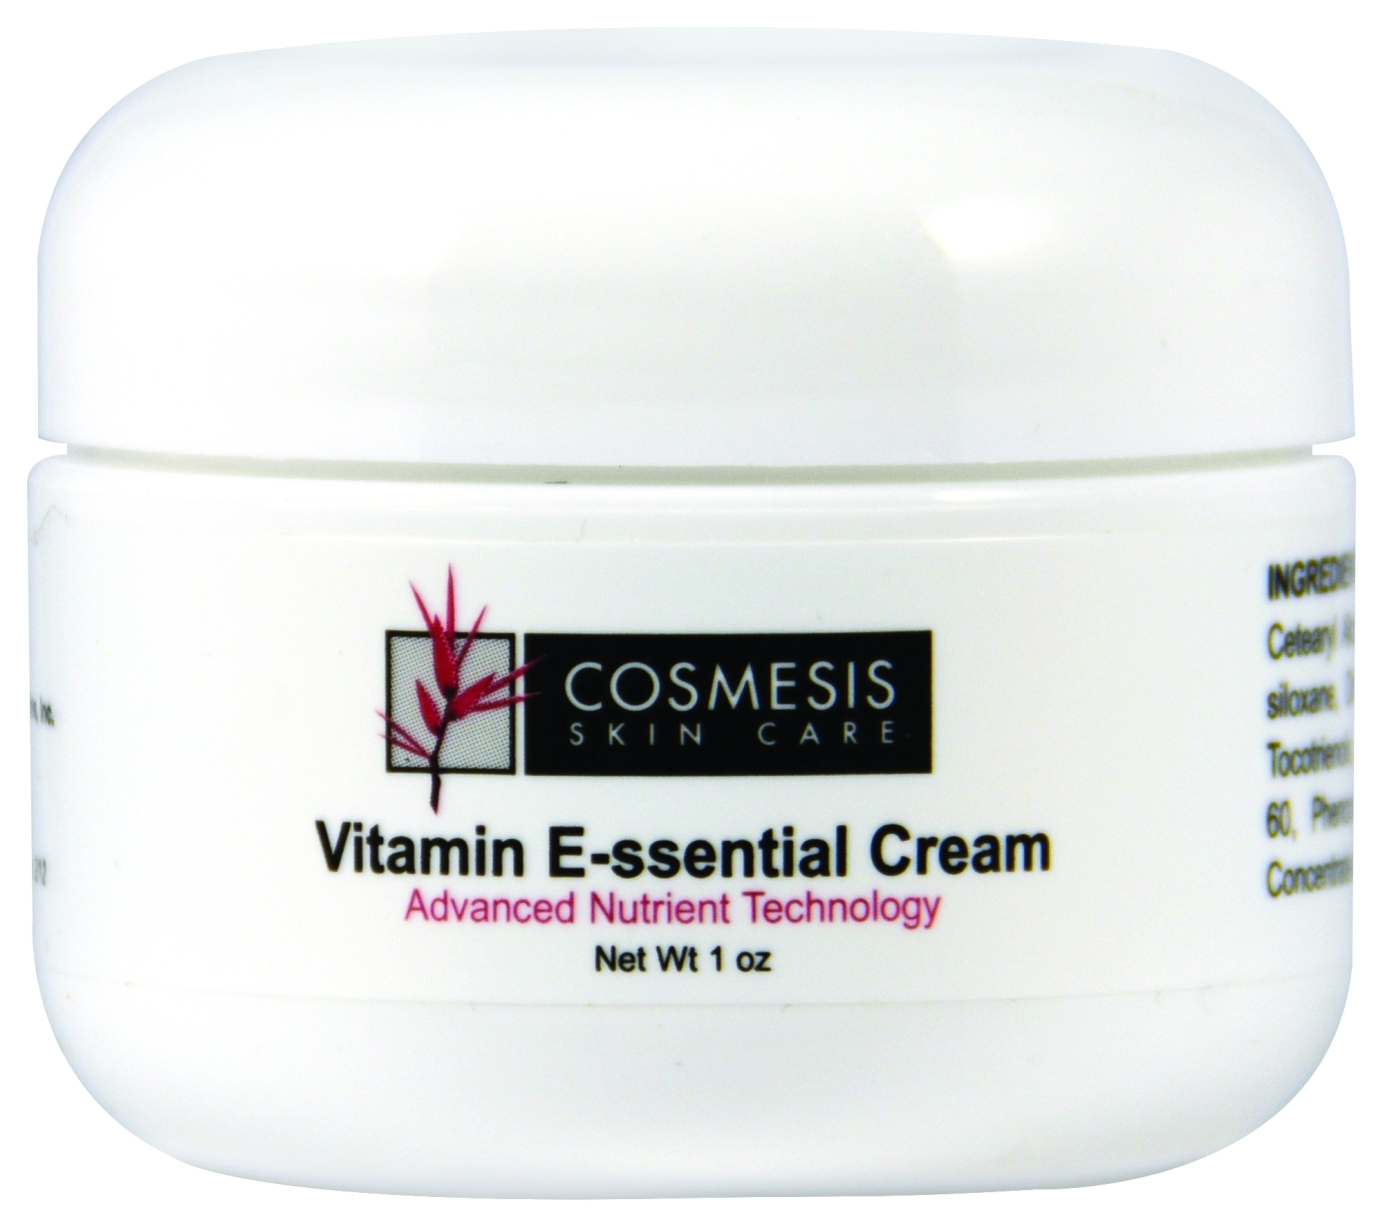 Vitamin E-ssential Cream 1 oz (30 ml) by Life Extension